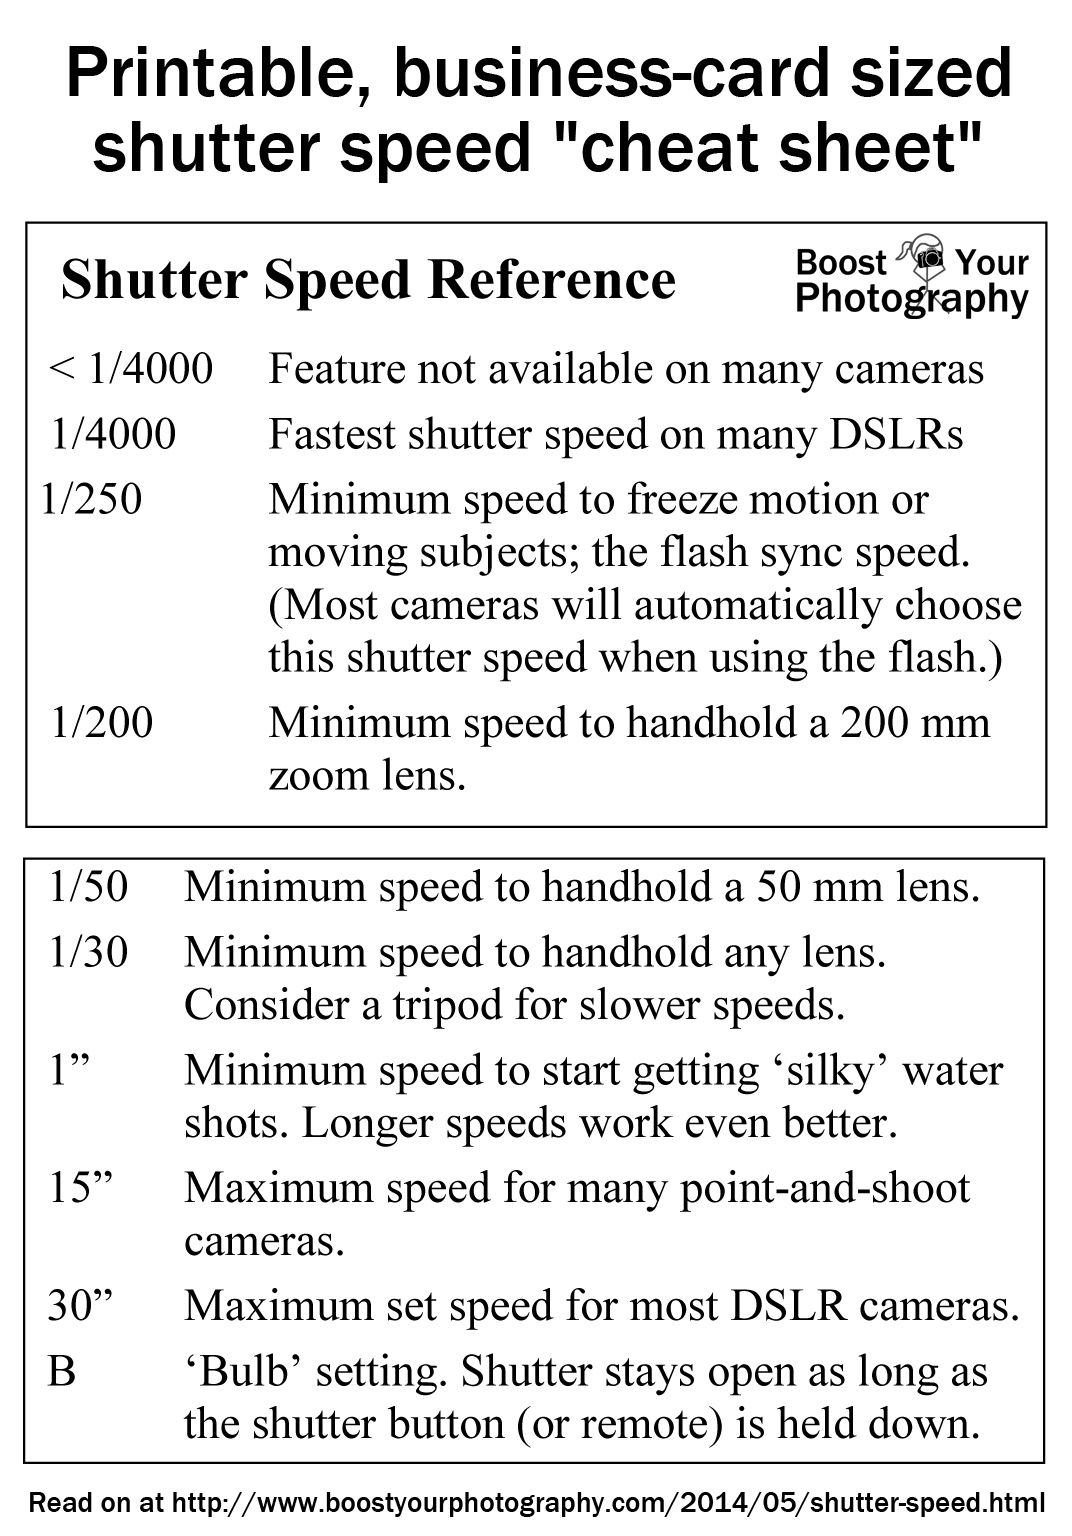 Shutter Speed Guidelines | Printable business cards, Business card ...